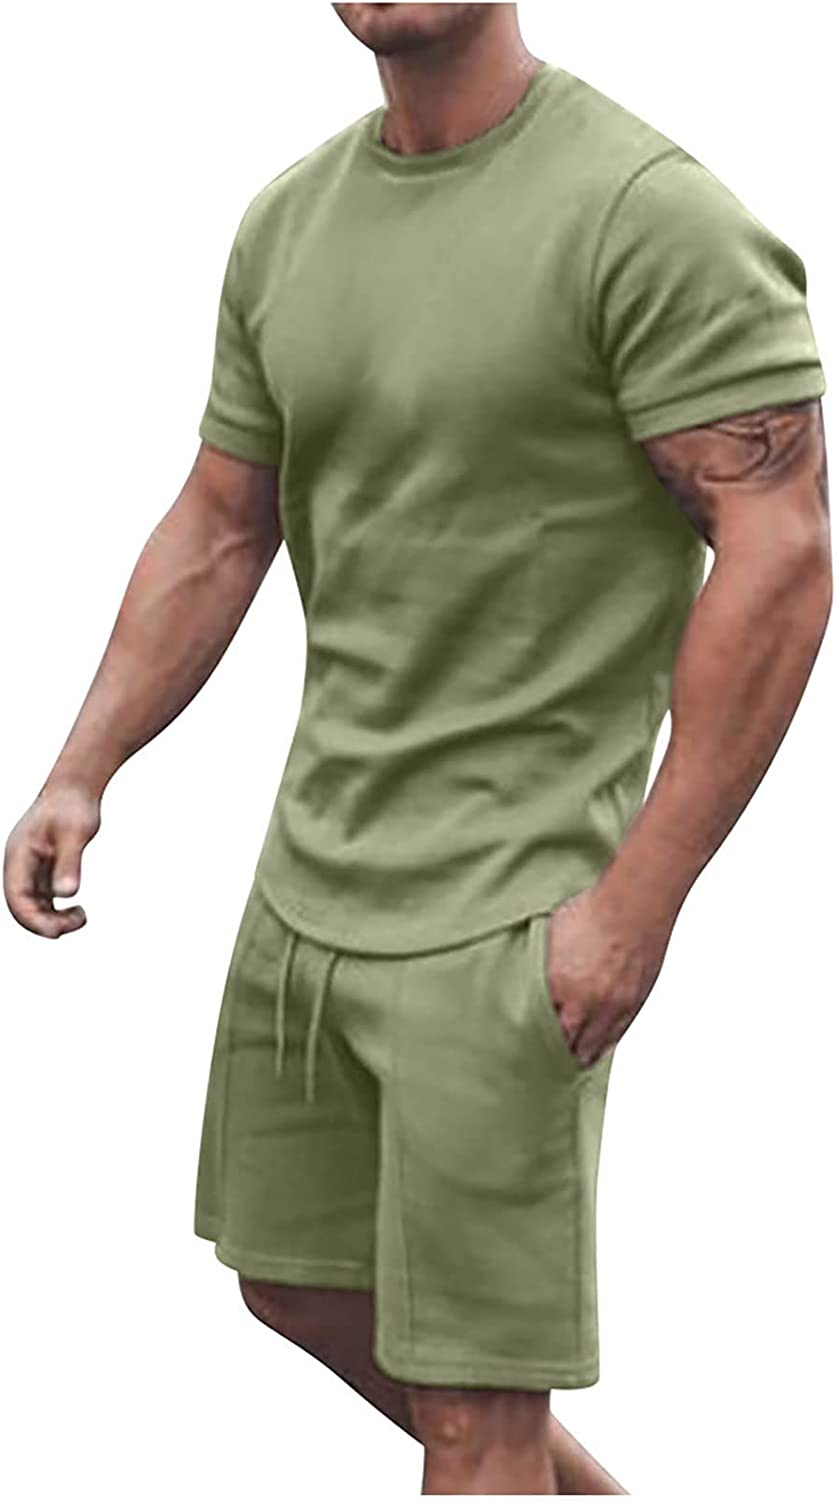 Men's Casual Tracksuits Short Sleeve Shorts Suit 2-Piece Outfit Solid Color Round Neck T-Shirt and Shorts Set